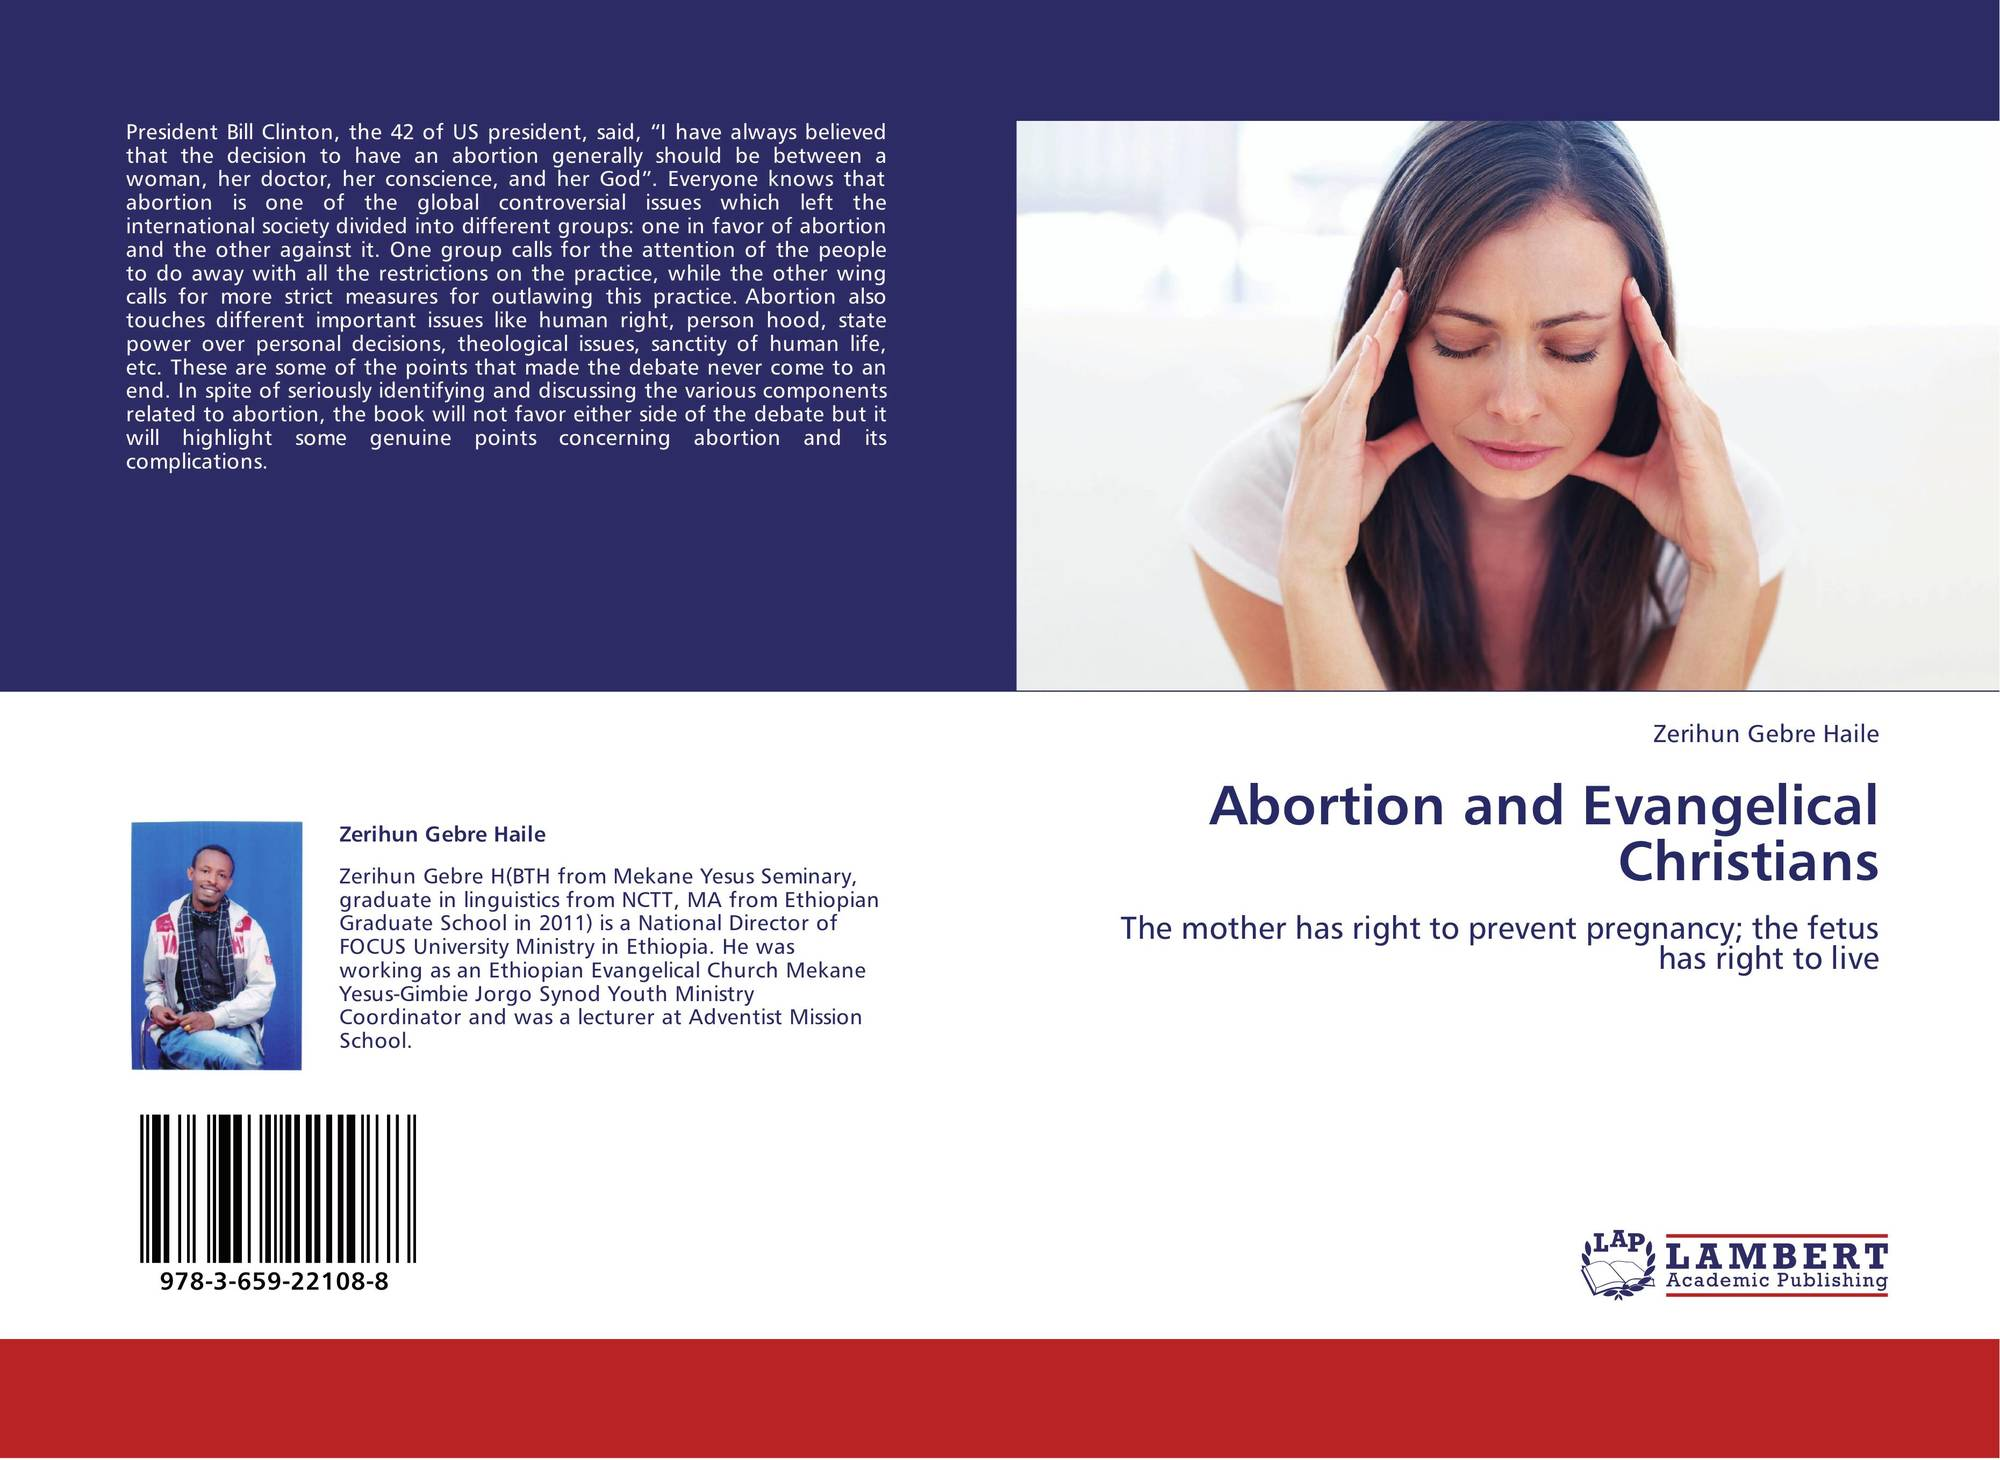 an overview of the different ways of securing an abortion and the complications of abortion